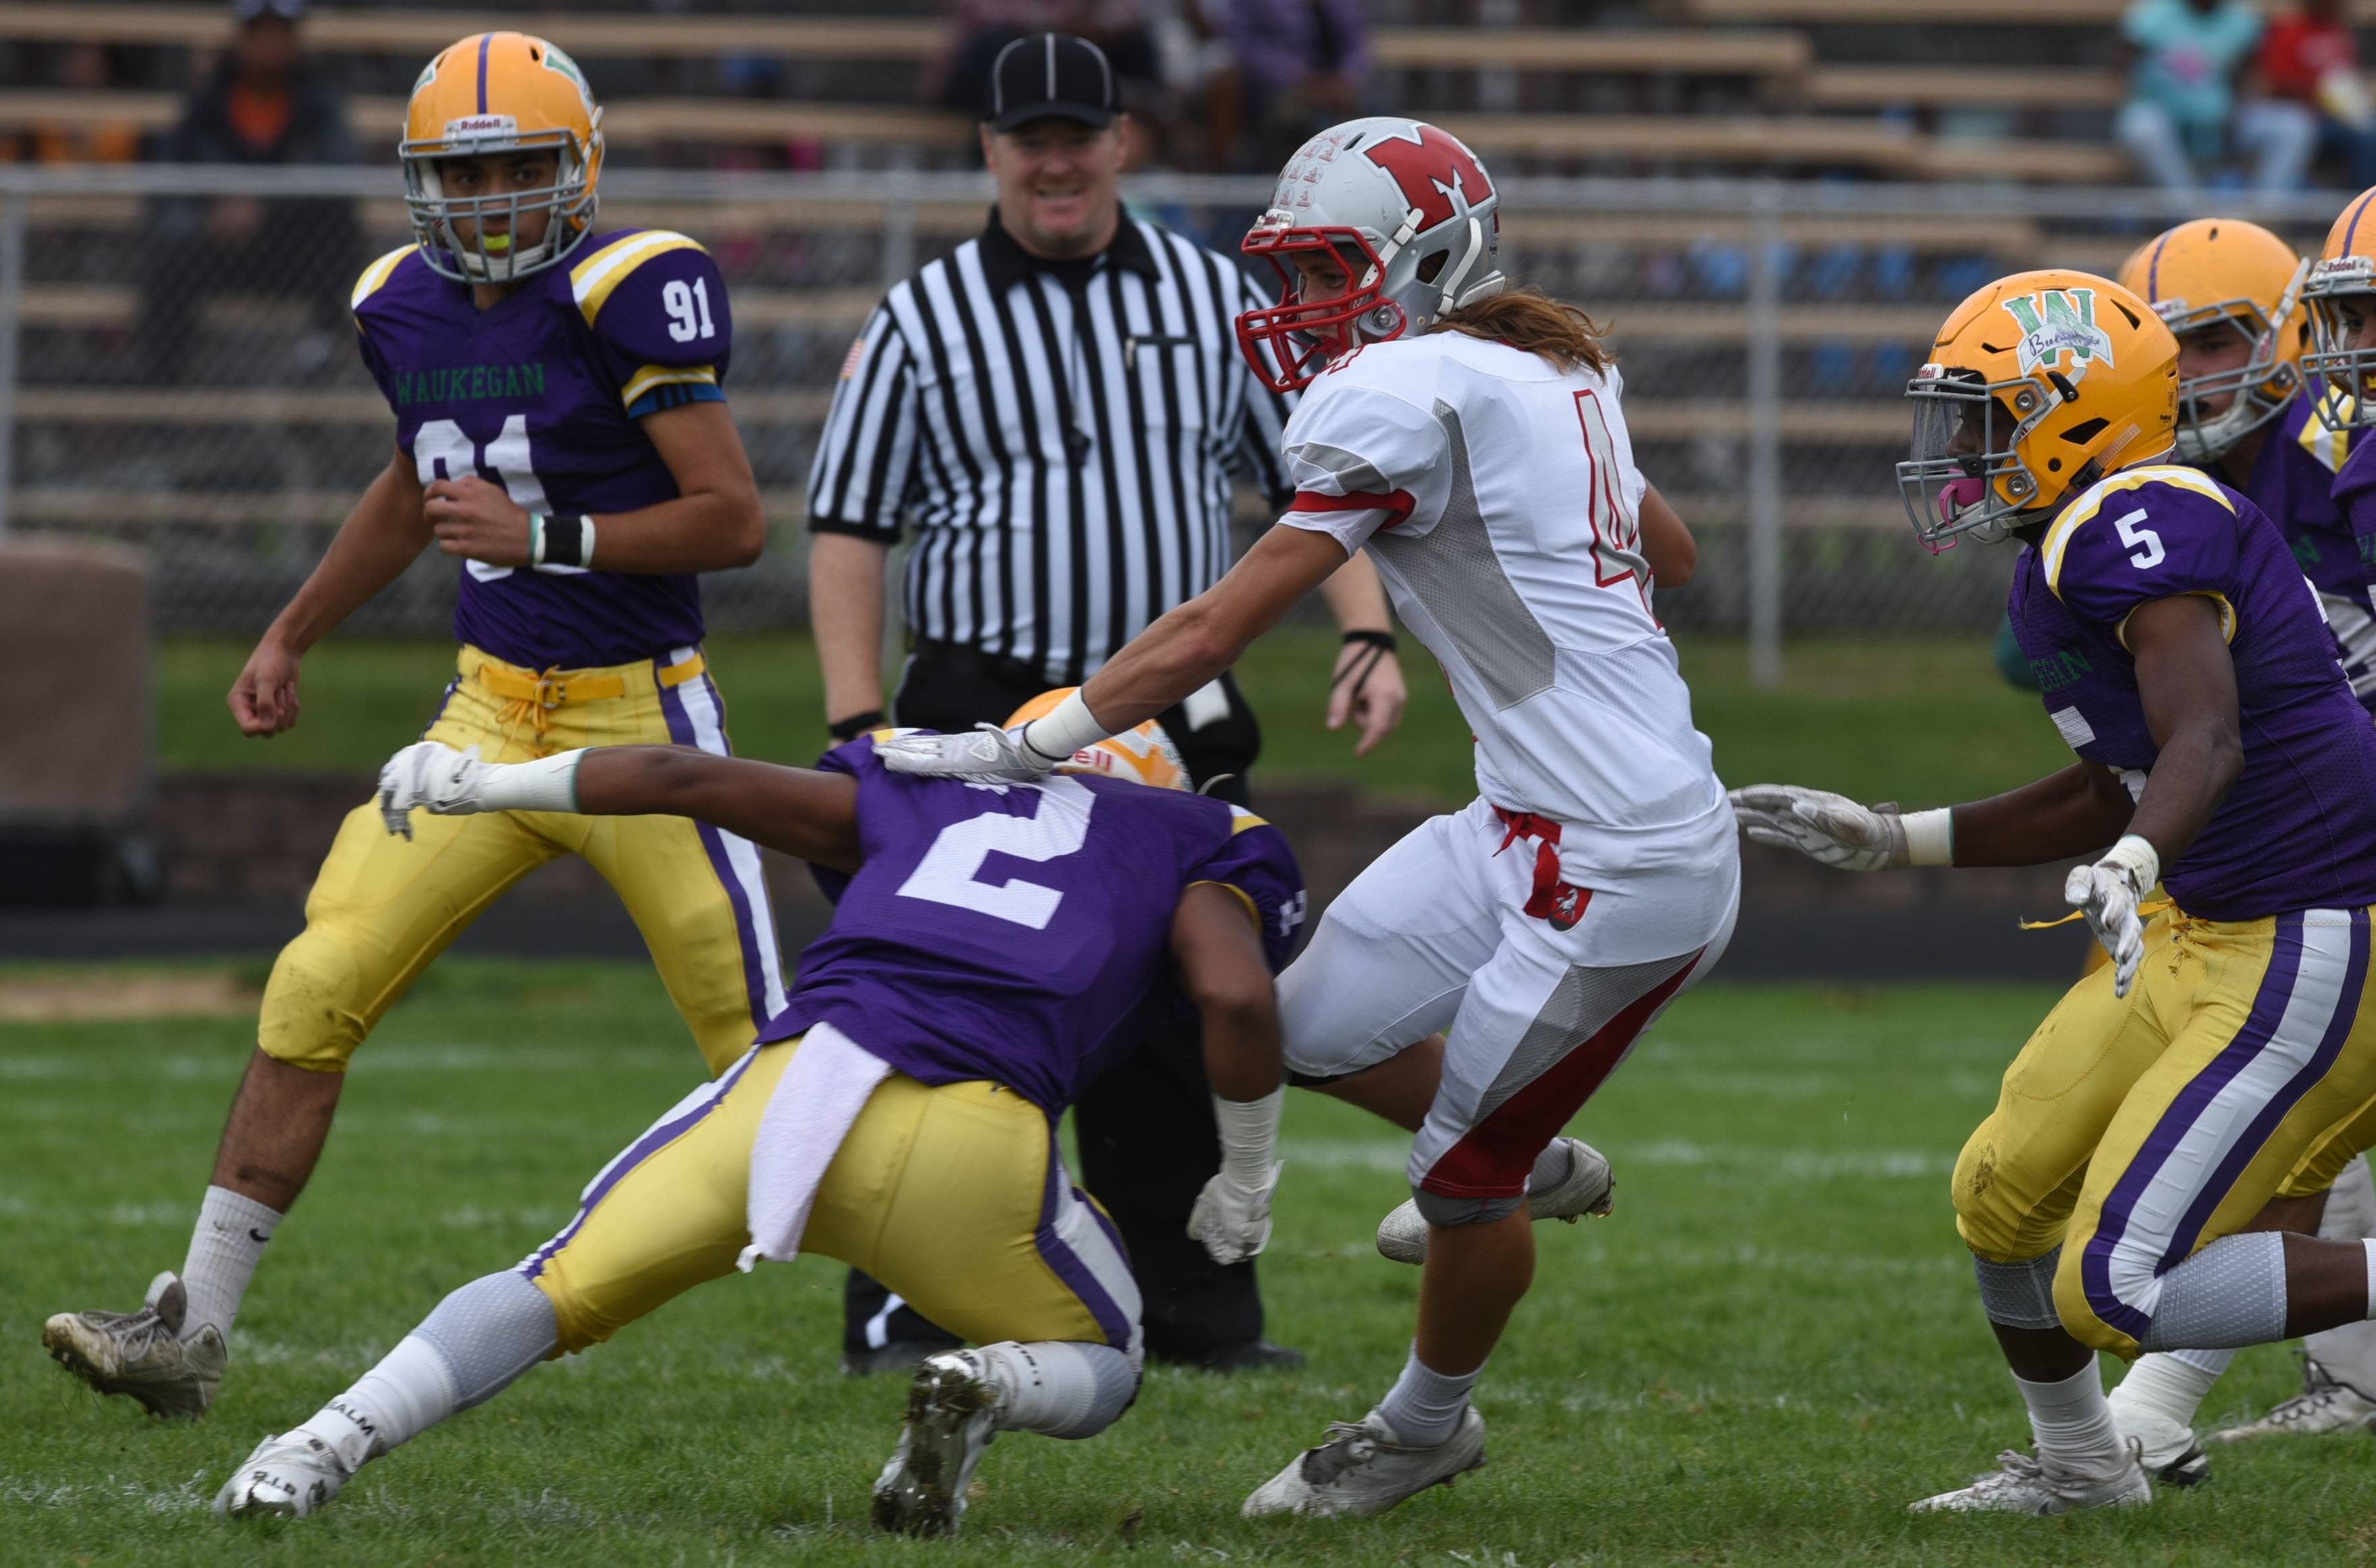 Week -5- Photos from the Waukegan vs. Mundelein football game on Saturday, Sept. 24 in Waukegan.